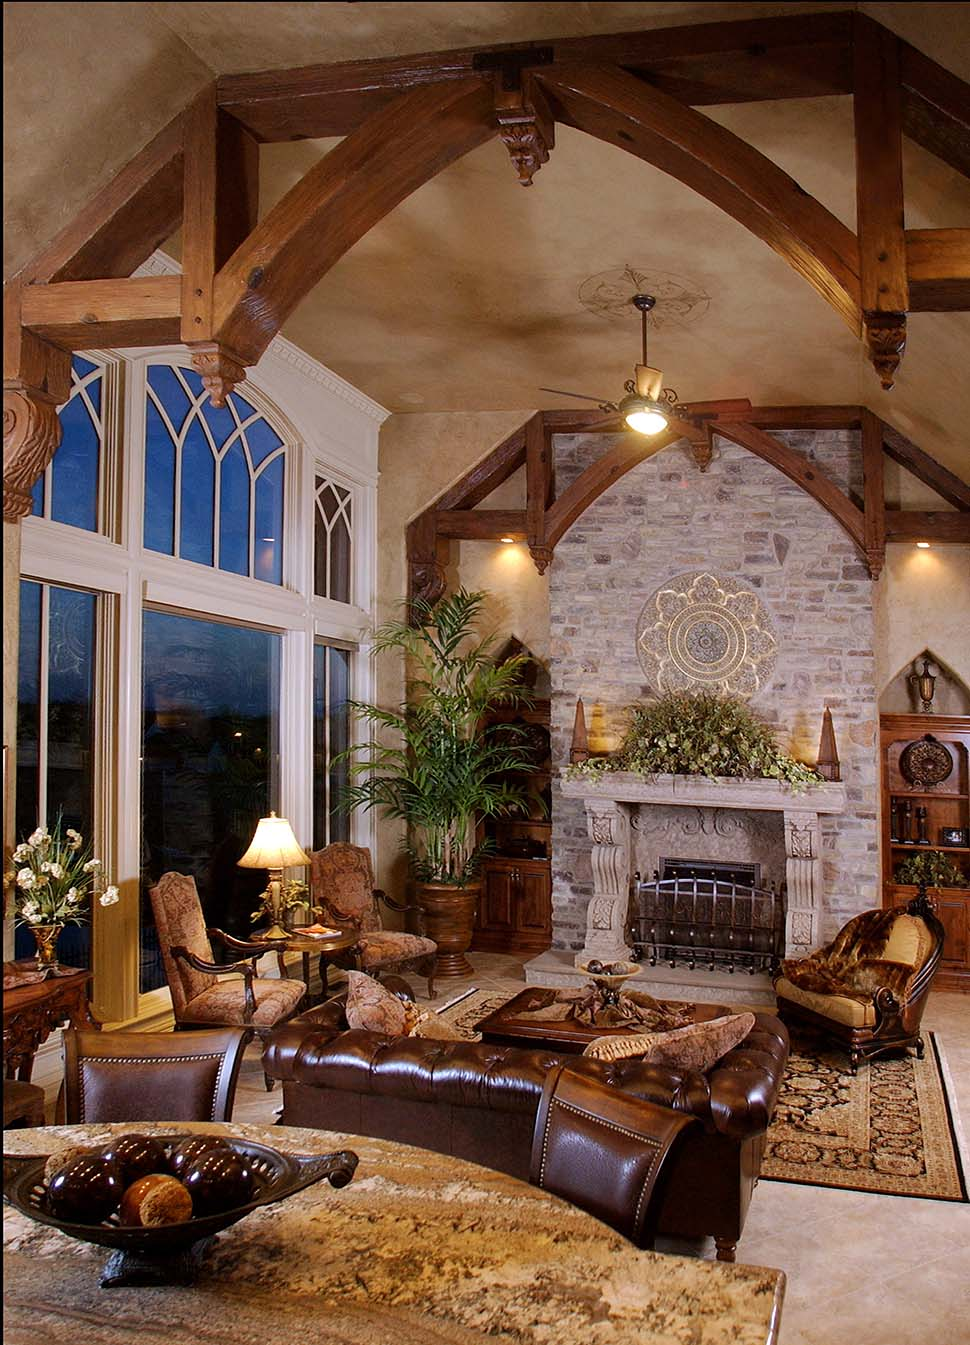 European, French Country, Tuscan House Plan 75492 with 4 Beds, 4 Baths, 3 Car Garage Picture 6